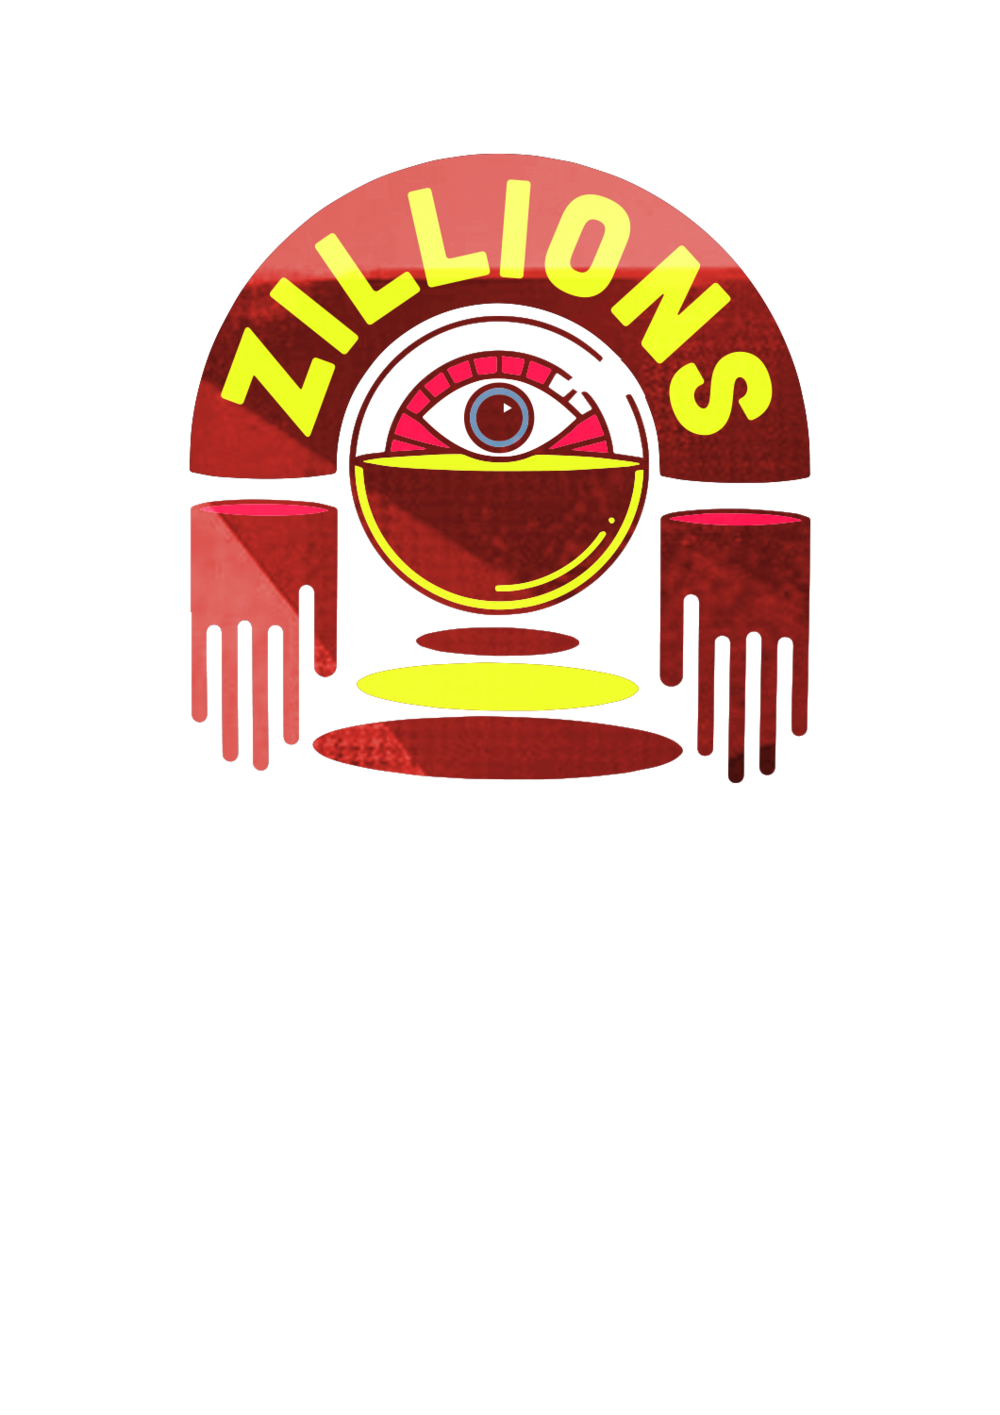 zillions2.png